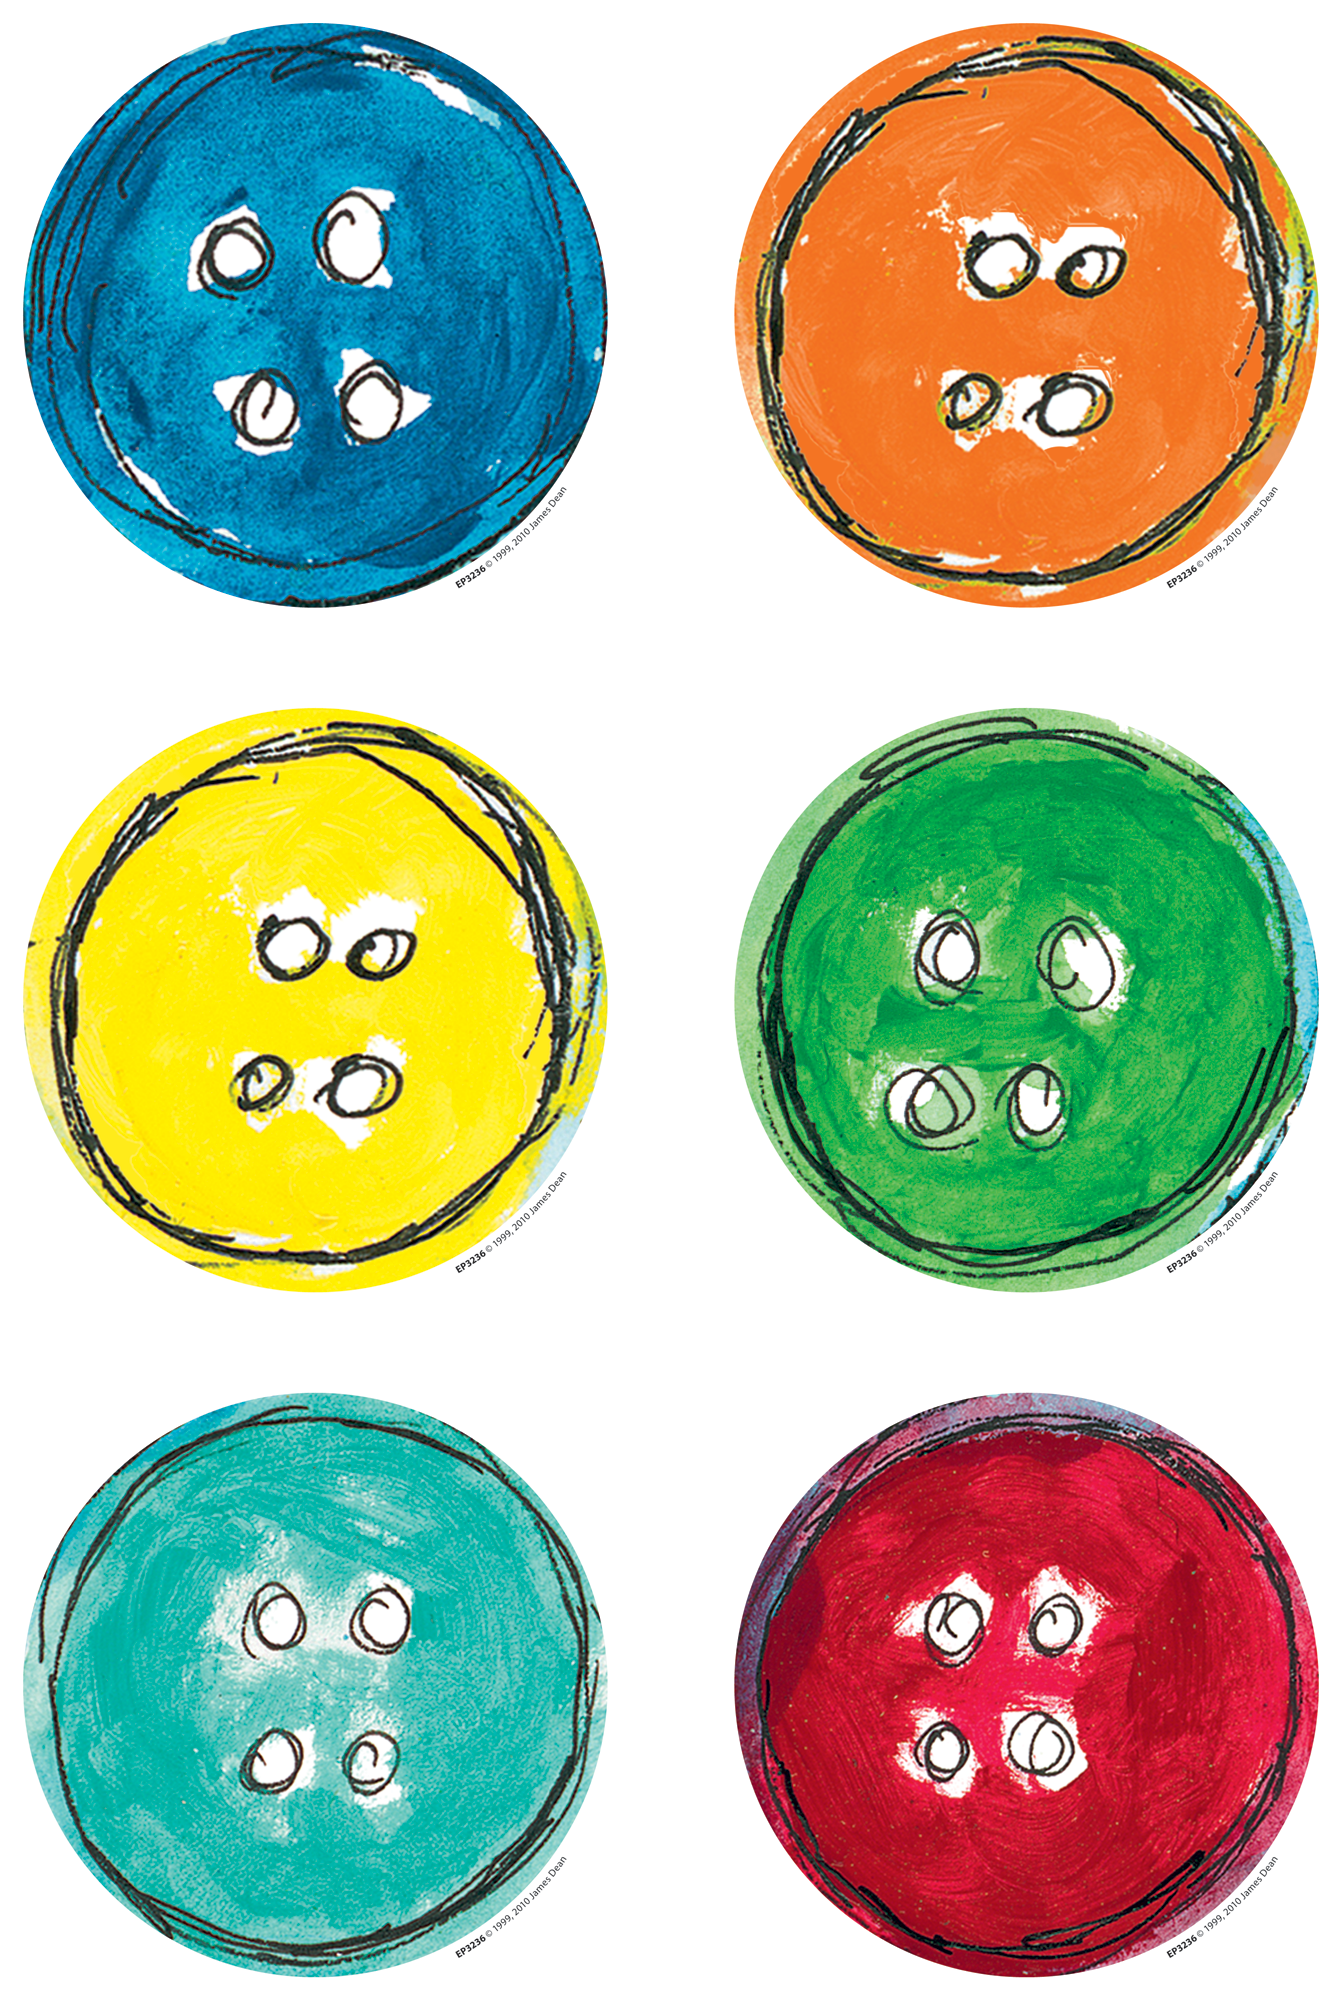 Pete the Cat¬ Groovy Buttons Accents